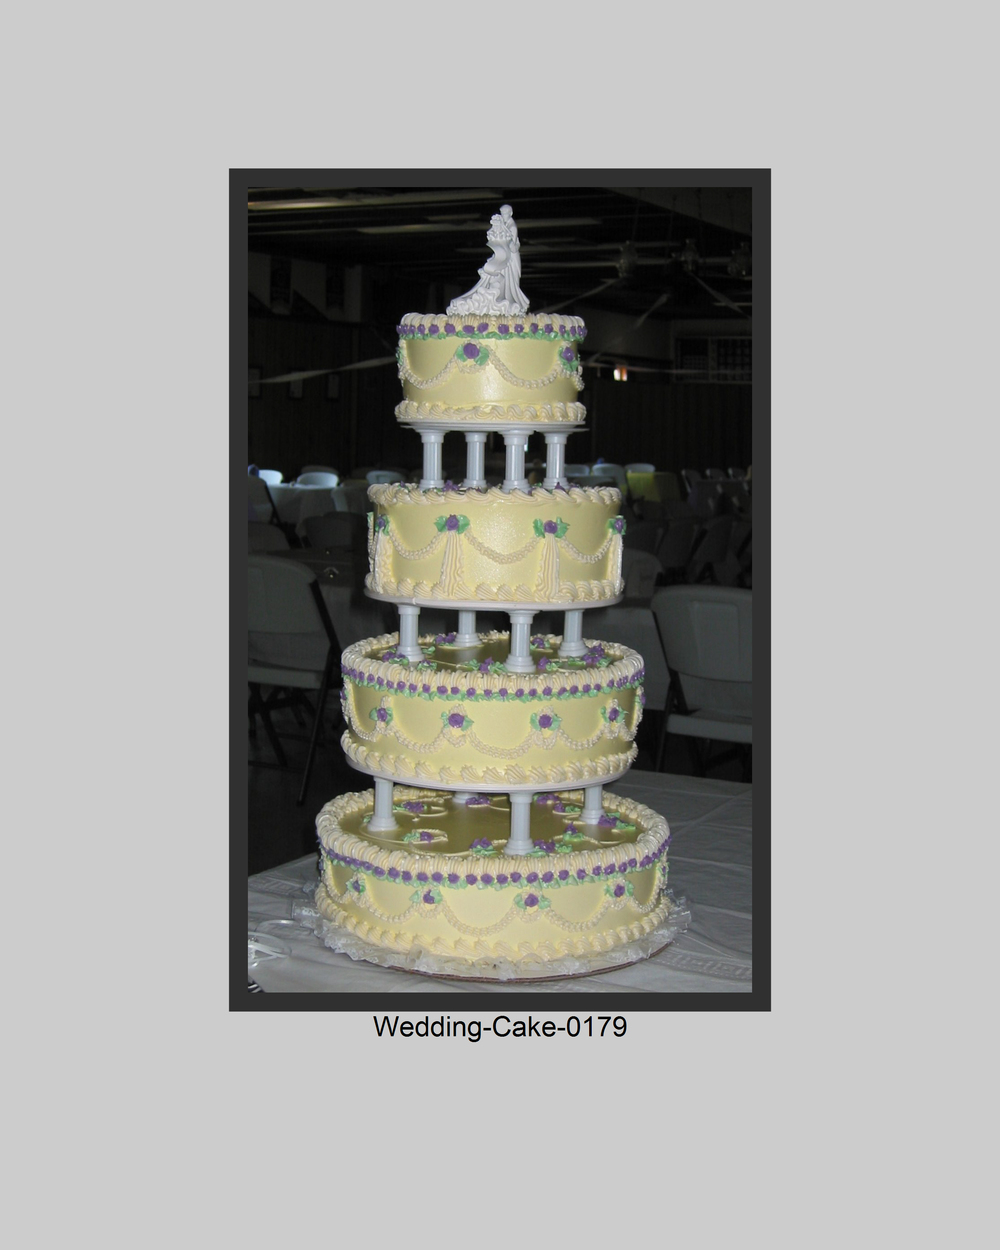 Wedding-Cake-Prints-0179.jpg